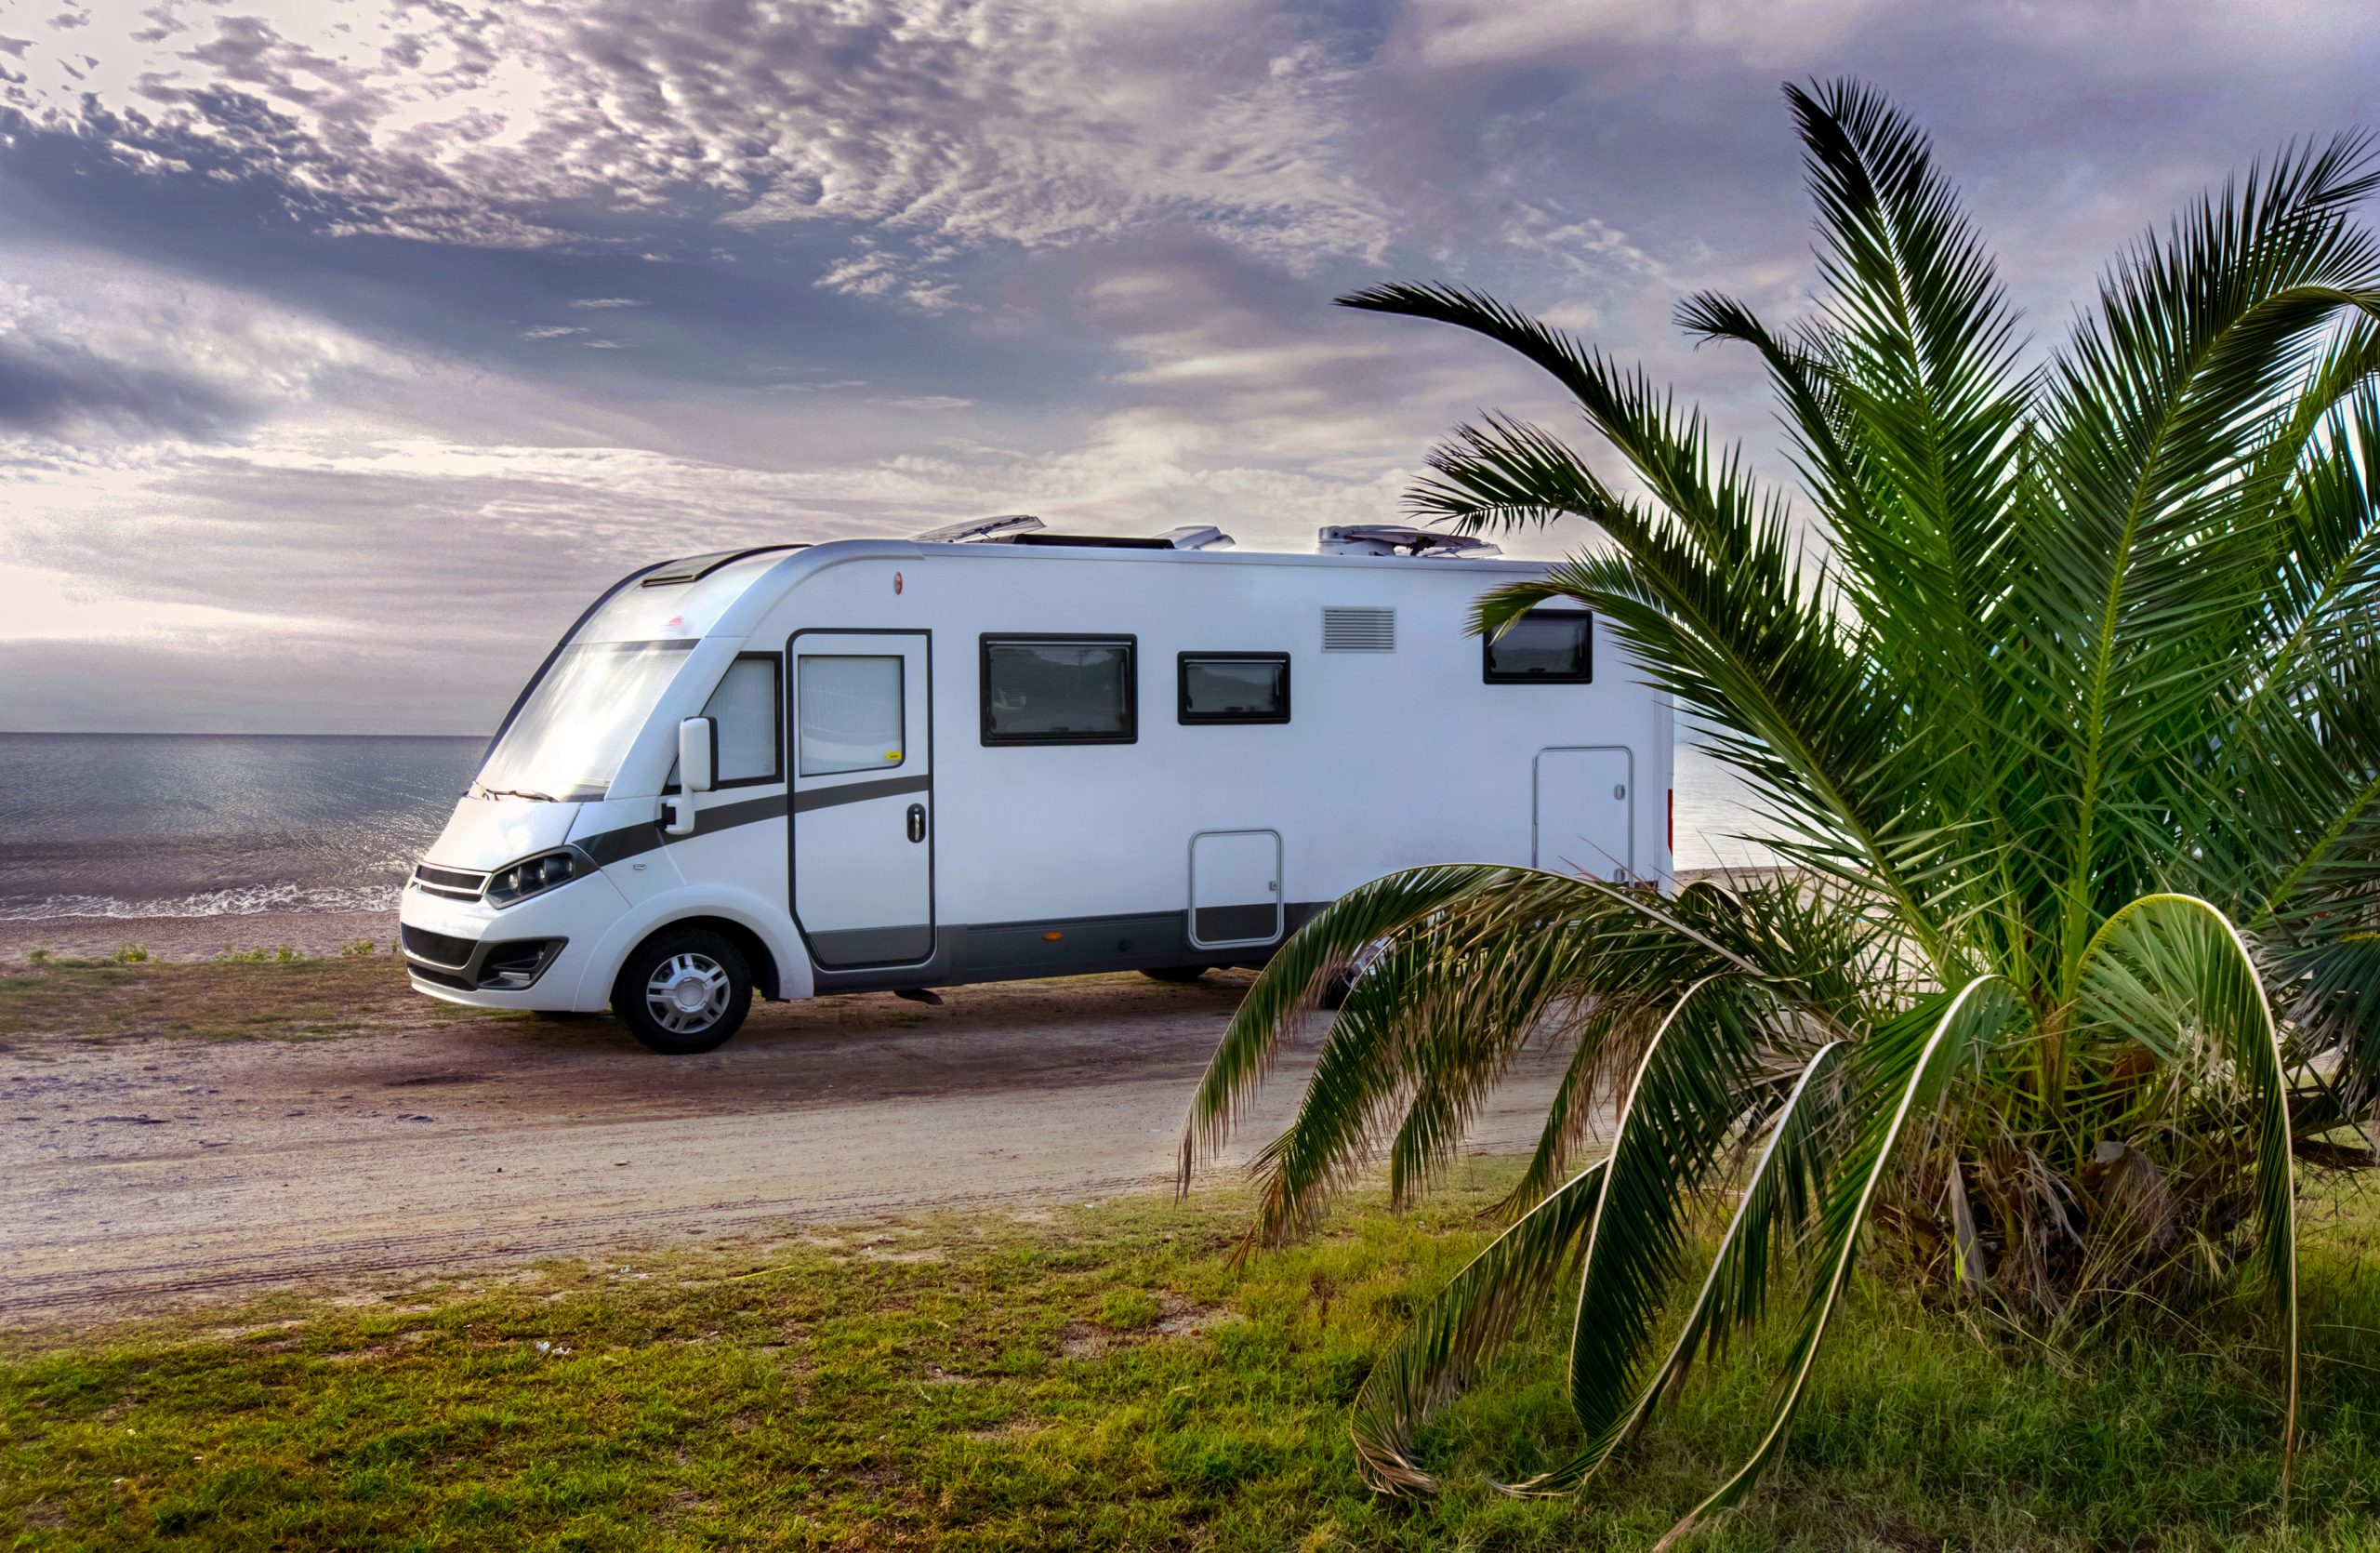 Oceanfront Campgrounds RV